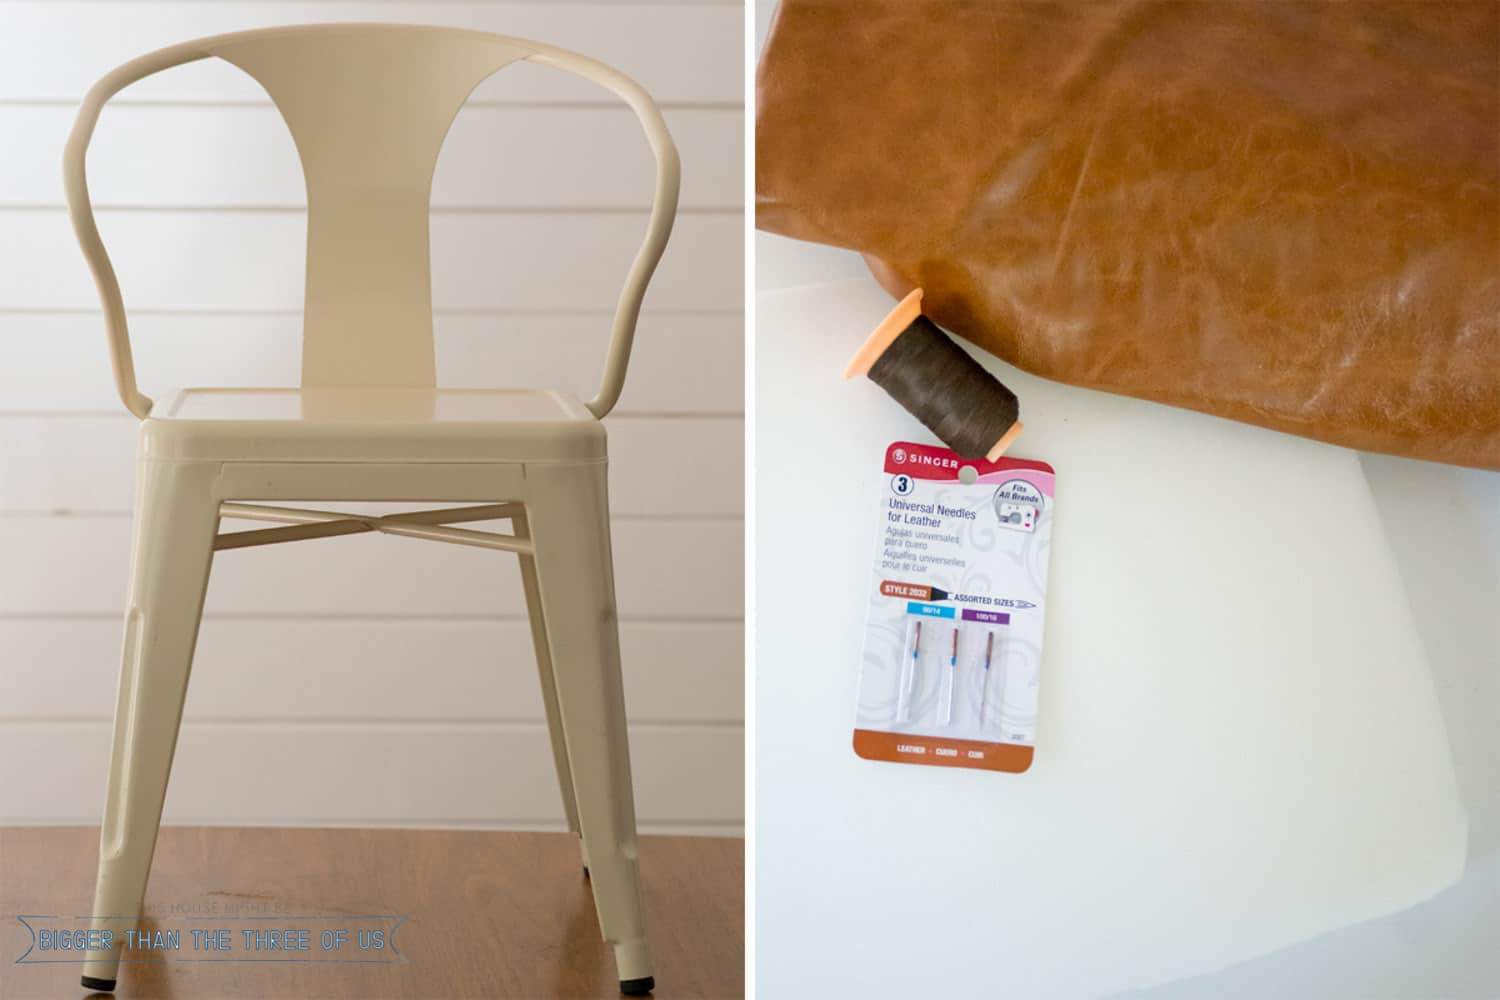 Best ideas about DIY Chair Cushion . Save or Pin Modern DIY Leather Chair Cushion Now.